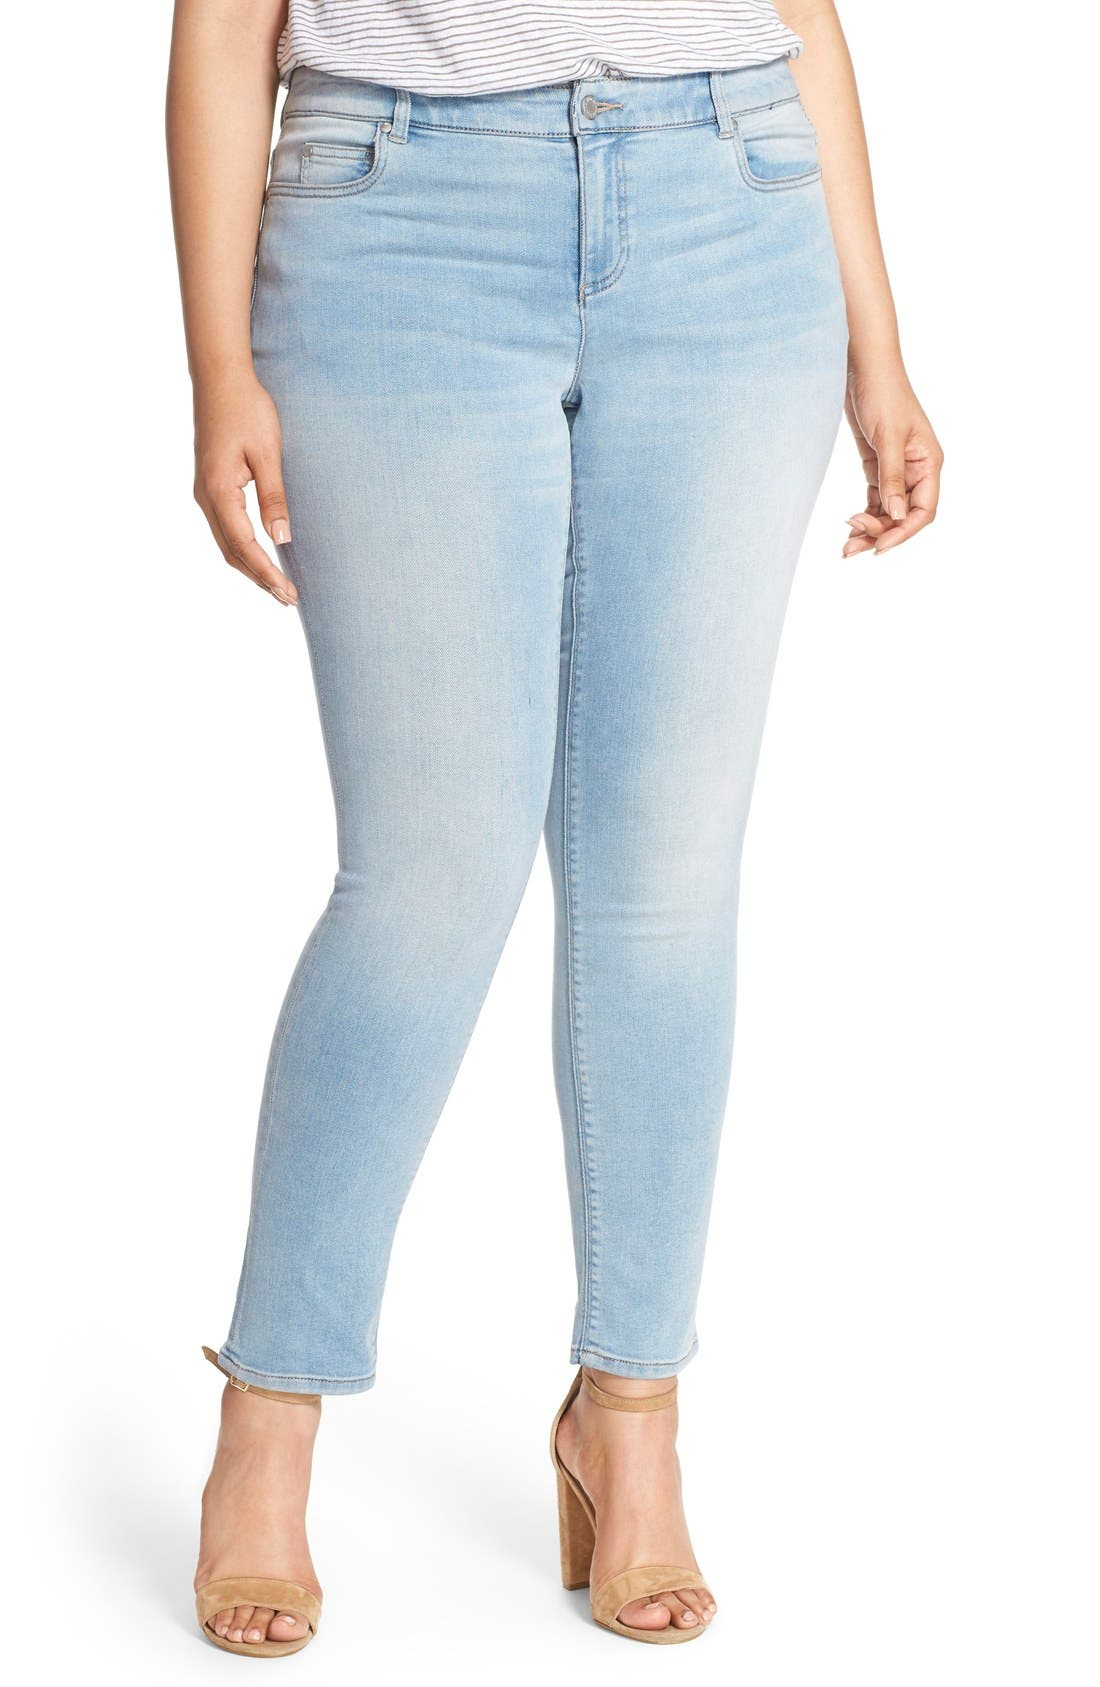 Alternate Image 1 Selected - Two by Vince Camuto Super Stretch Skinny Jeans (Plus Size)